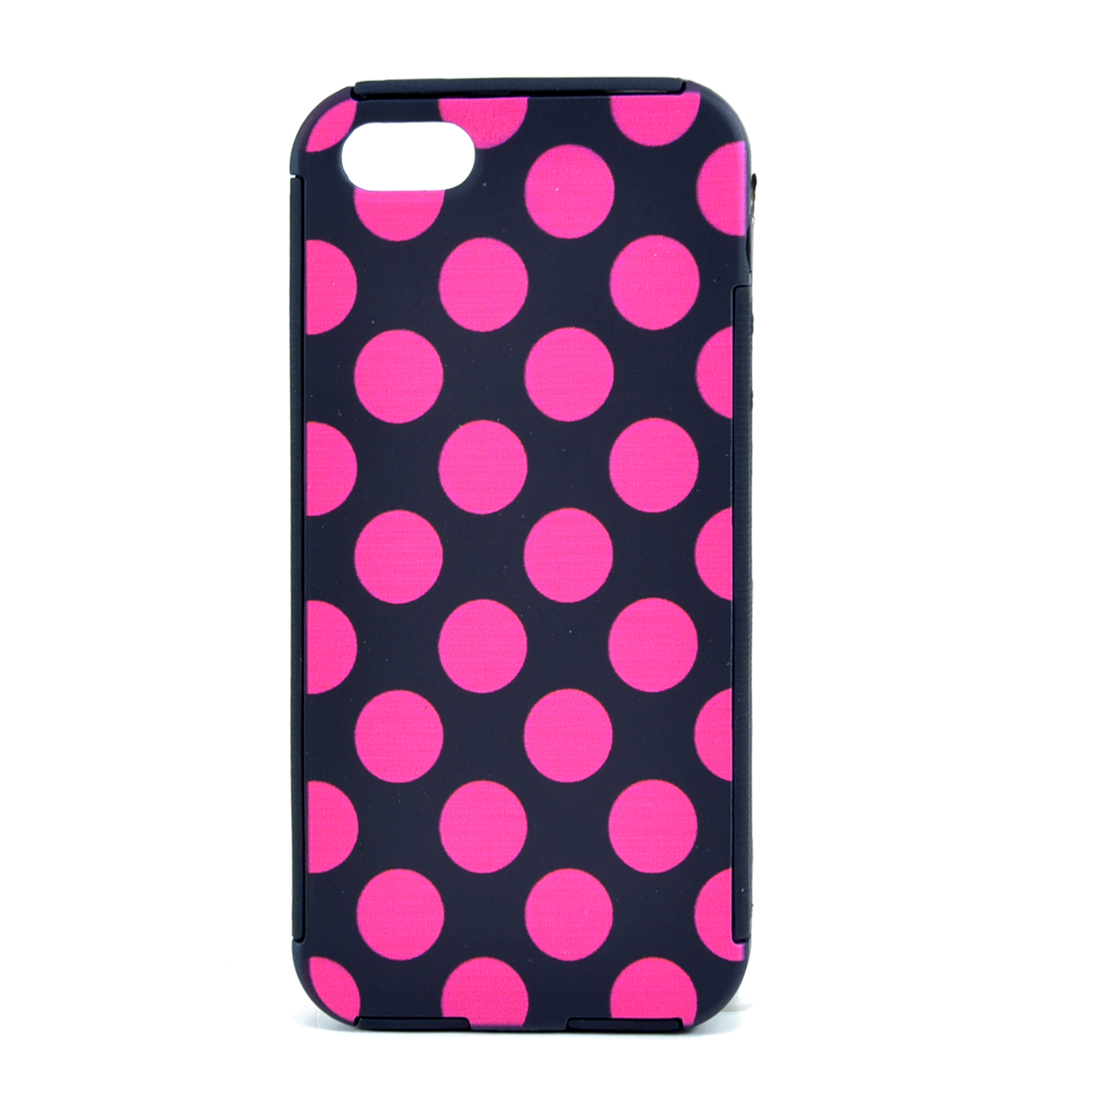 Dasein® Polka Dot Print Hardshell iPhone 5 5s 5g Case